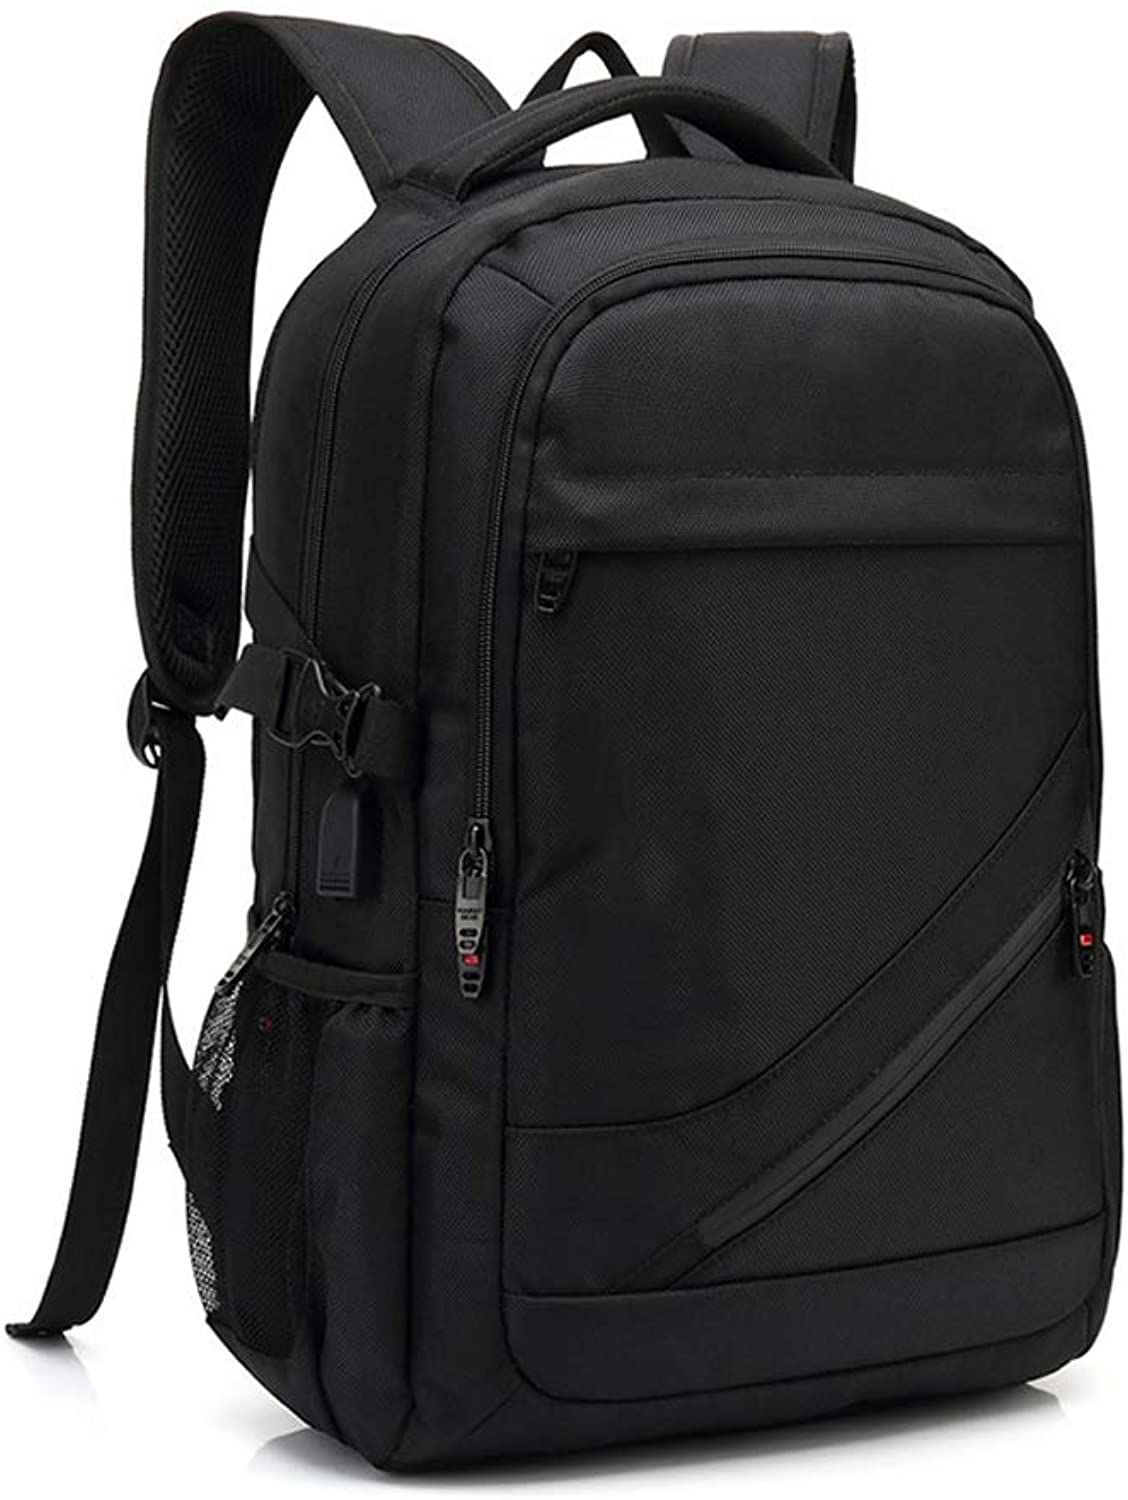 Backpack Outdoor Travel Business Computer Bag